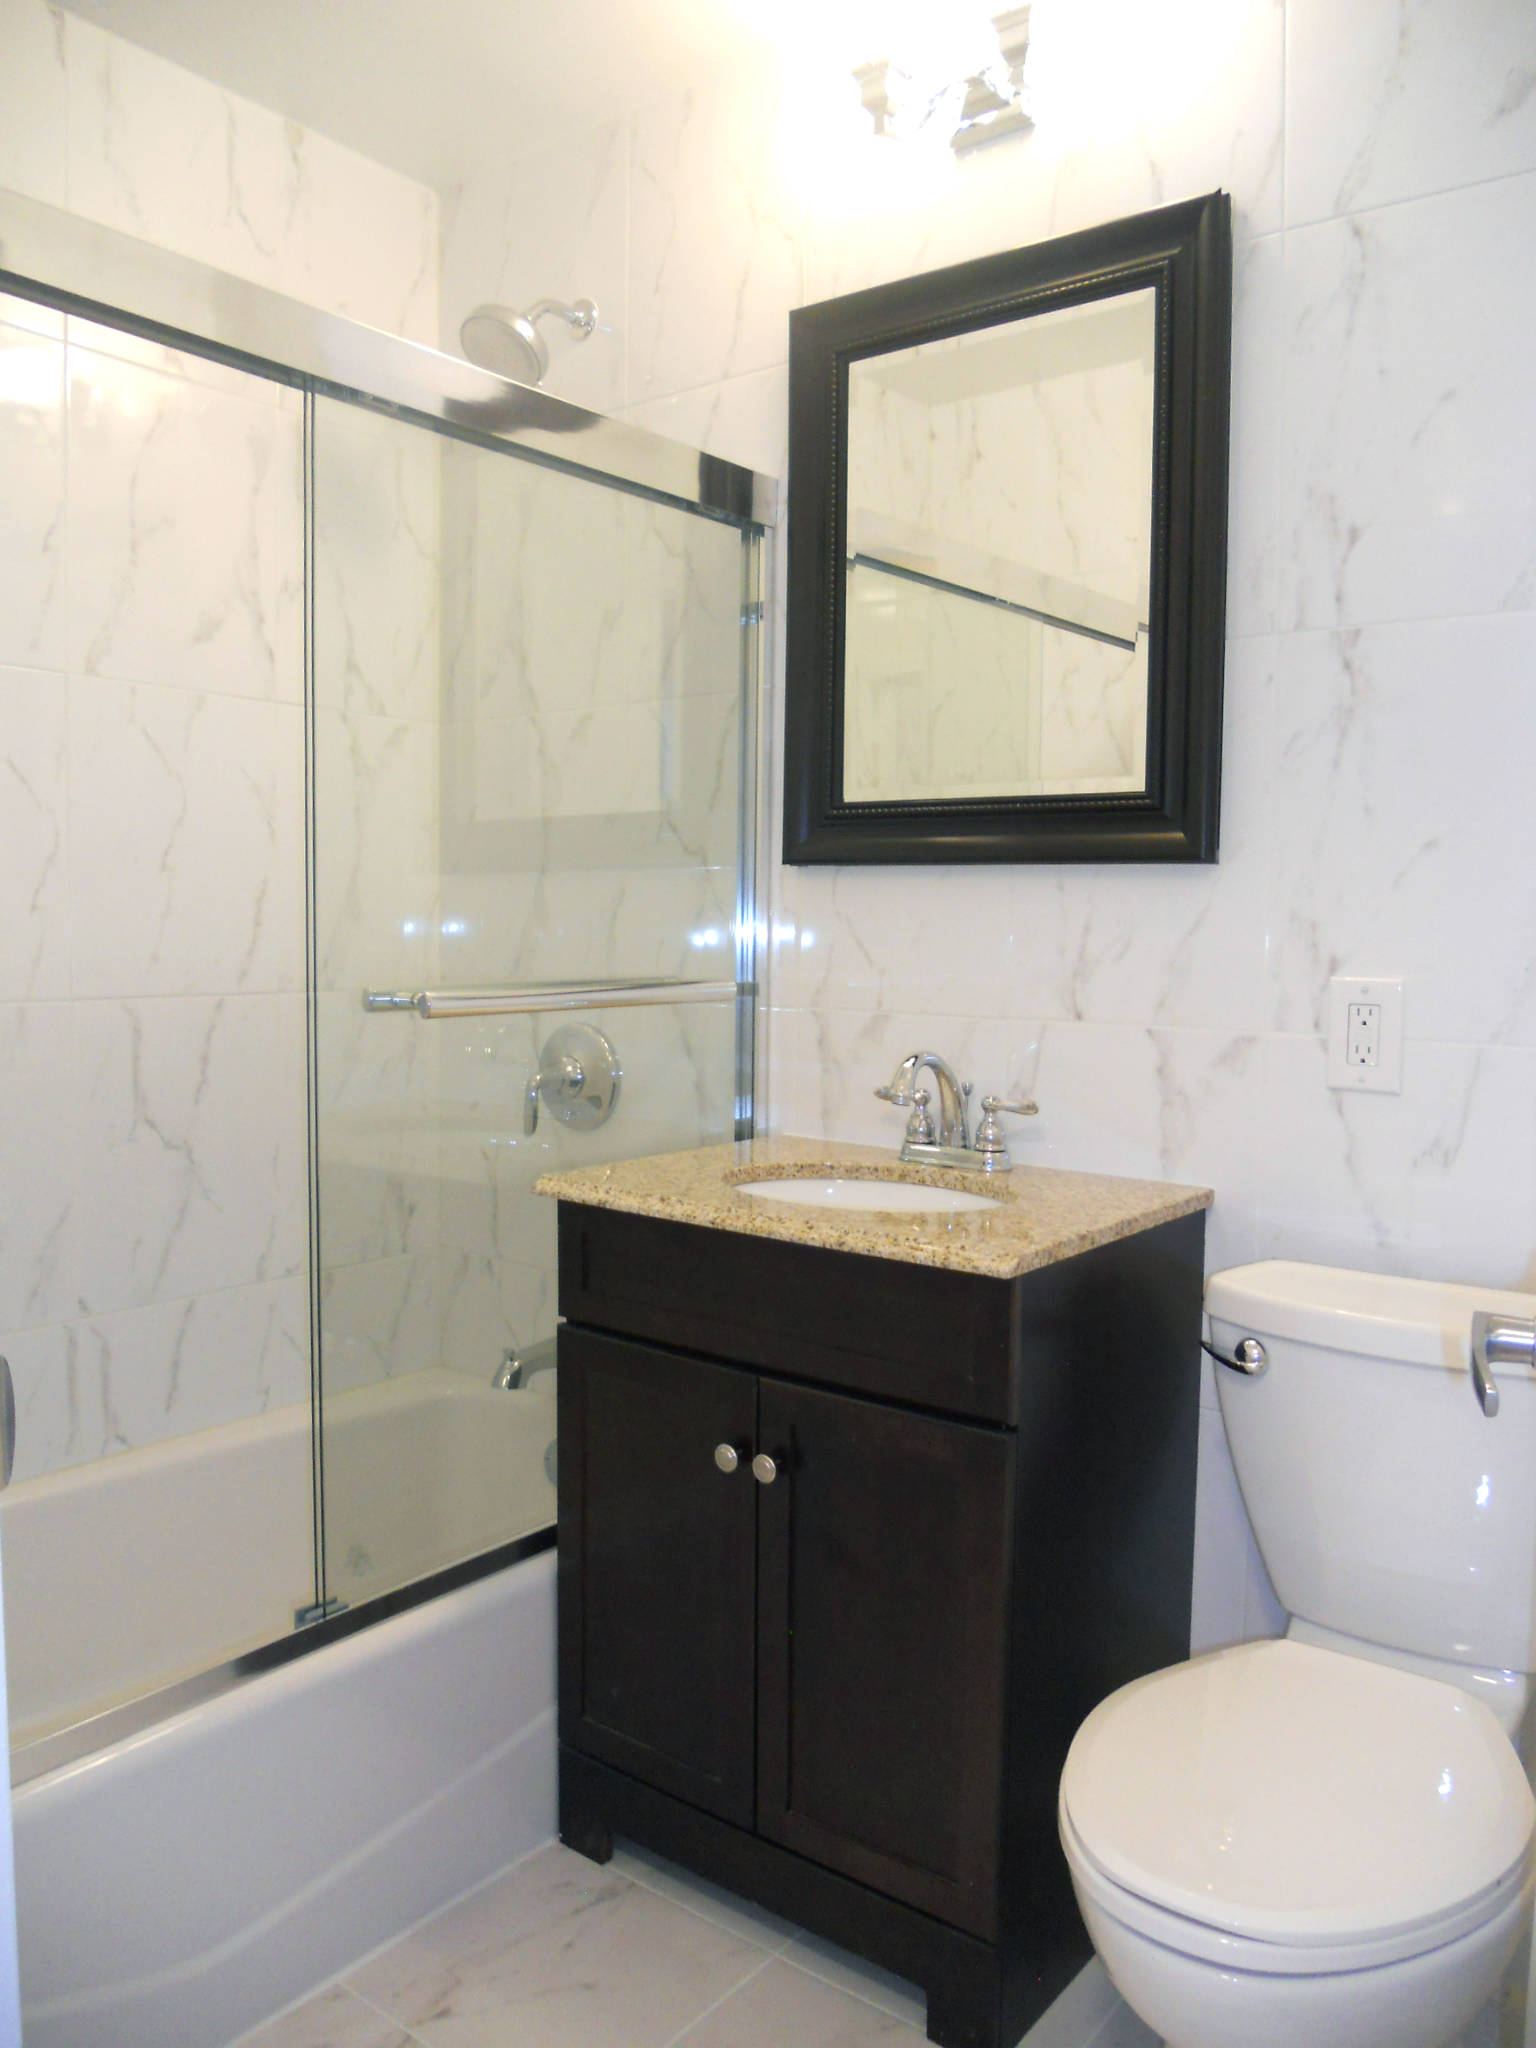 Renovated Bathroom for One Bedroom Rental at 155 West 68th Street the Dorchester Towers Condominium